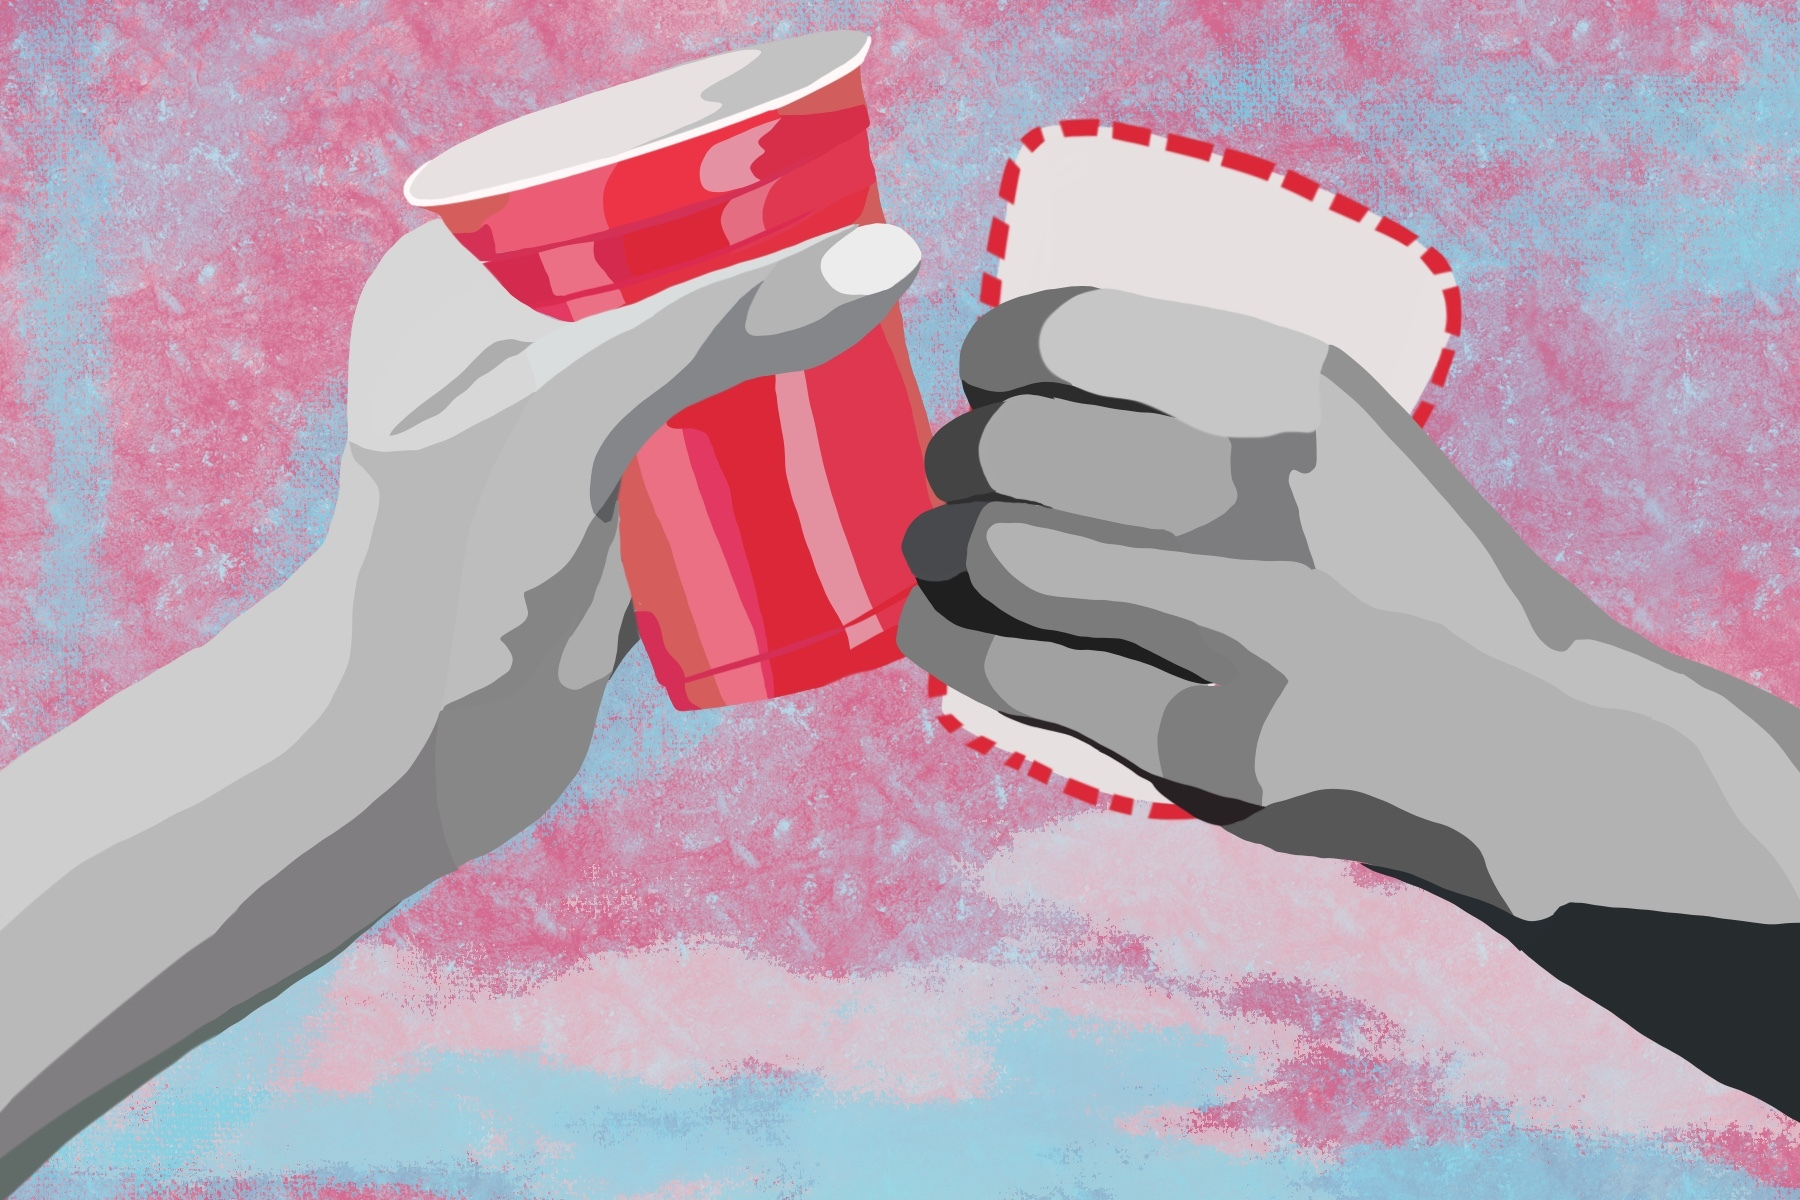 Two hands toasting with cups, the alcohol drinker holding a Solo cup and the sober drinker holding the blank outline of a Solo cup.